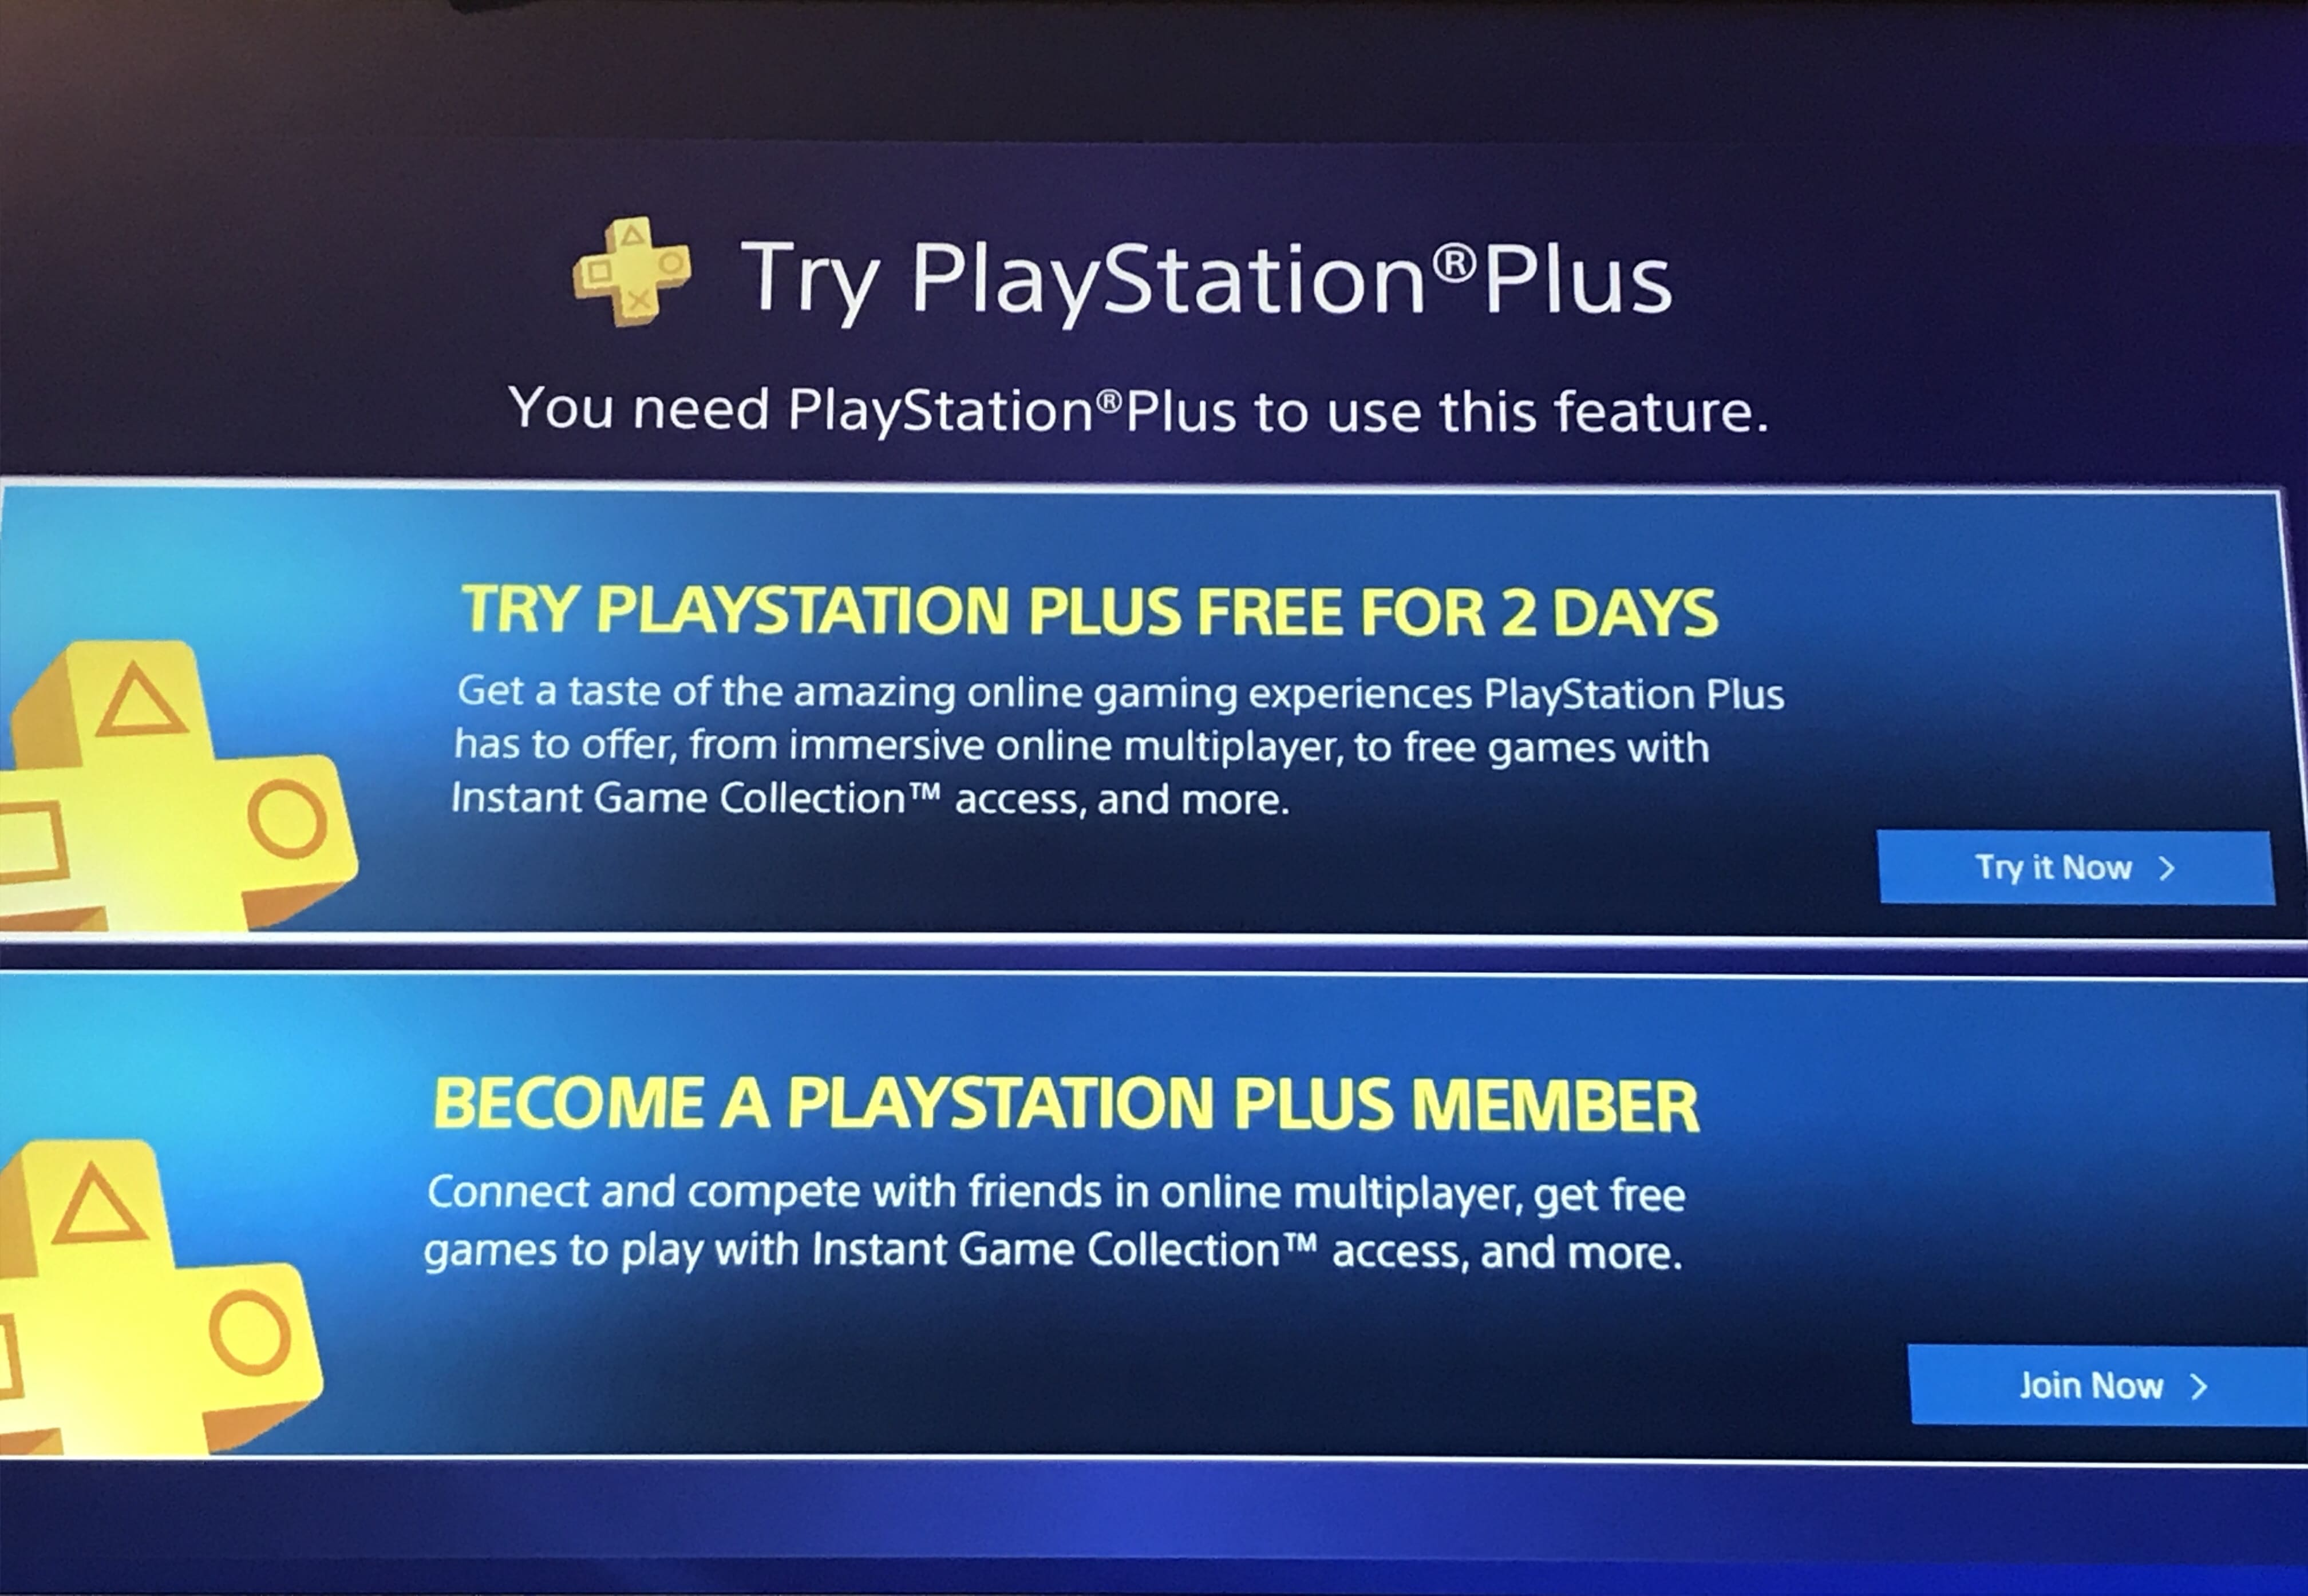 Playstation Plus two day trial for sales and adding the free